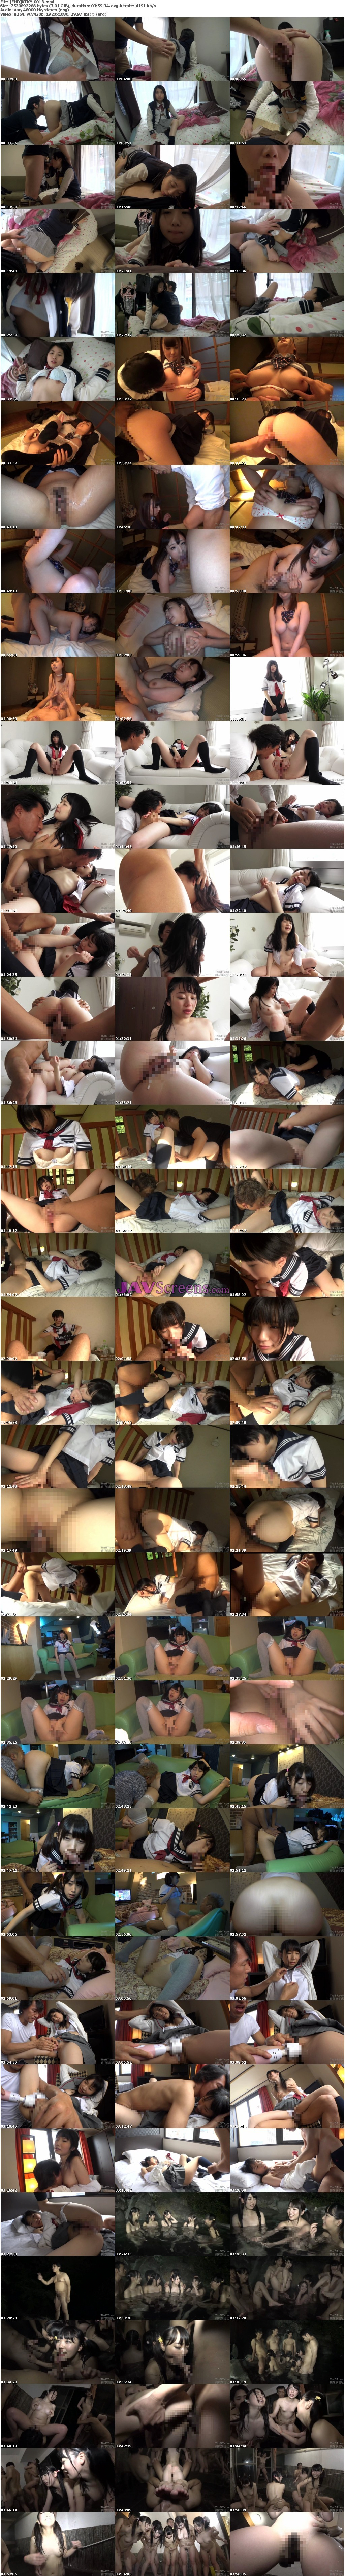 KTKY-001B.jpg - JAV Screenshot